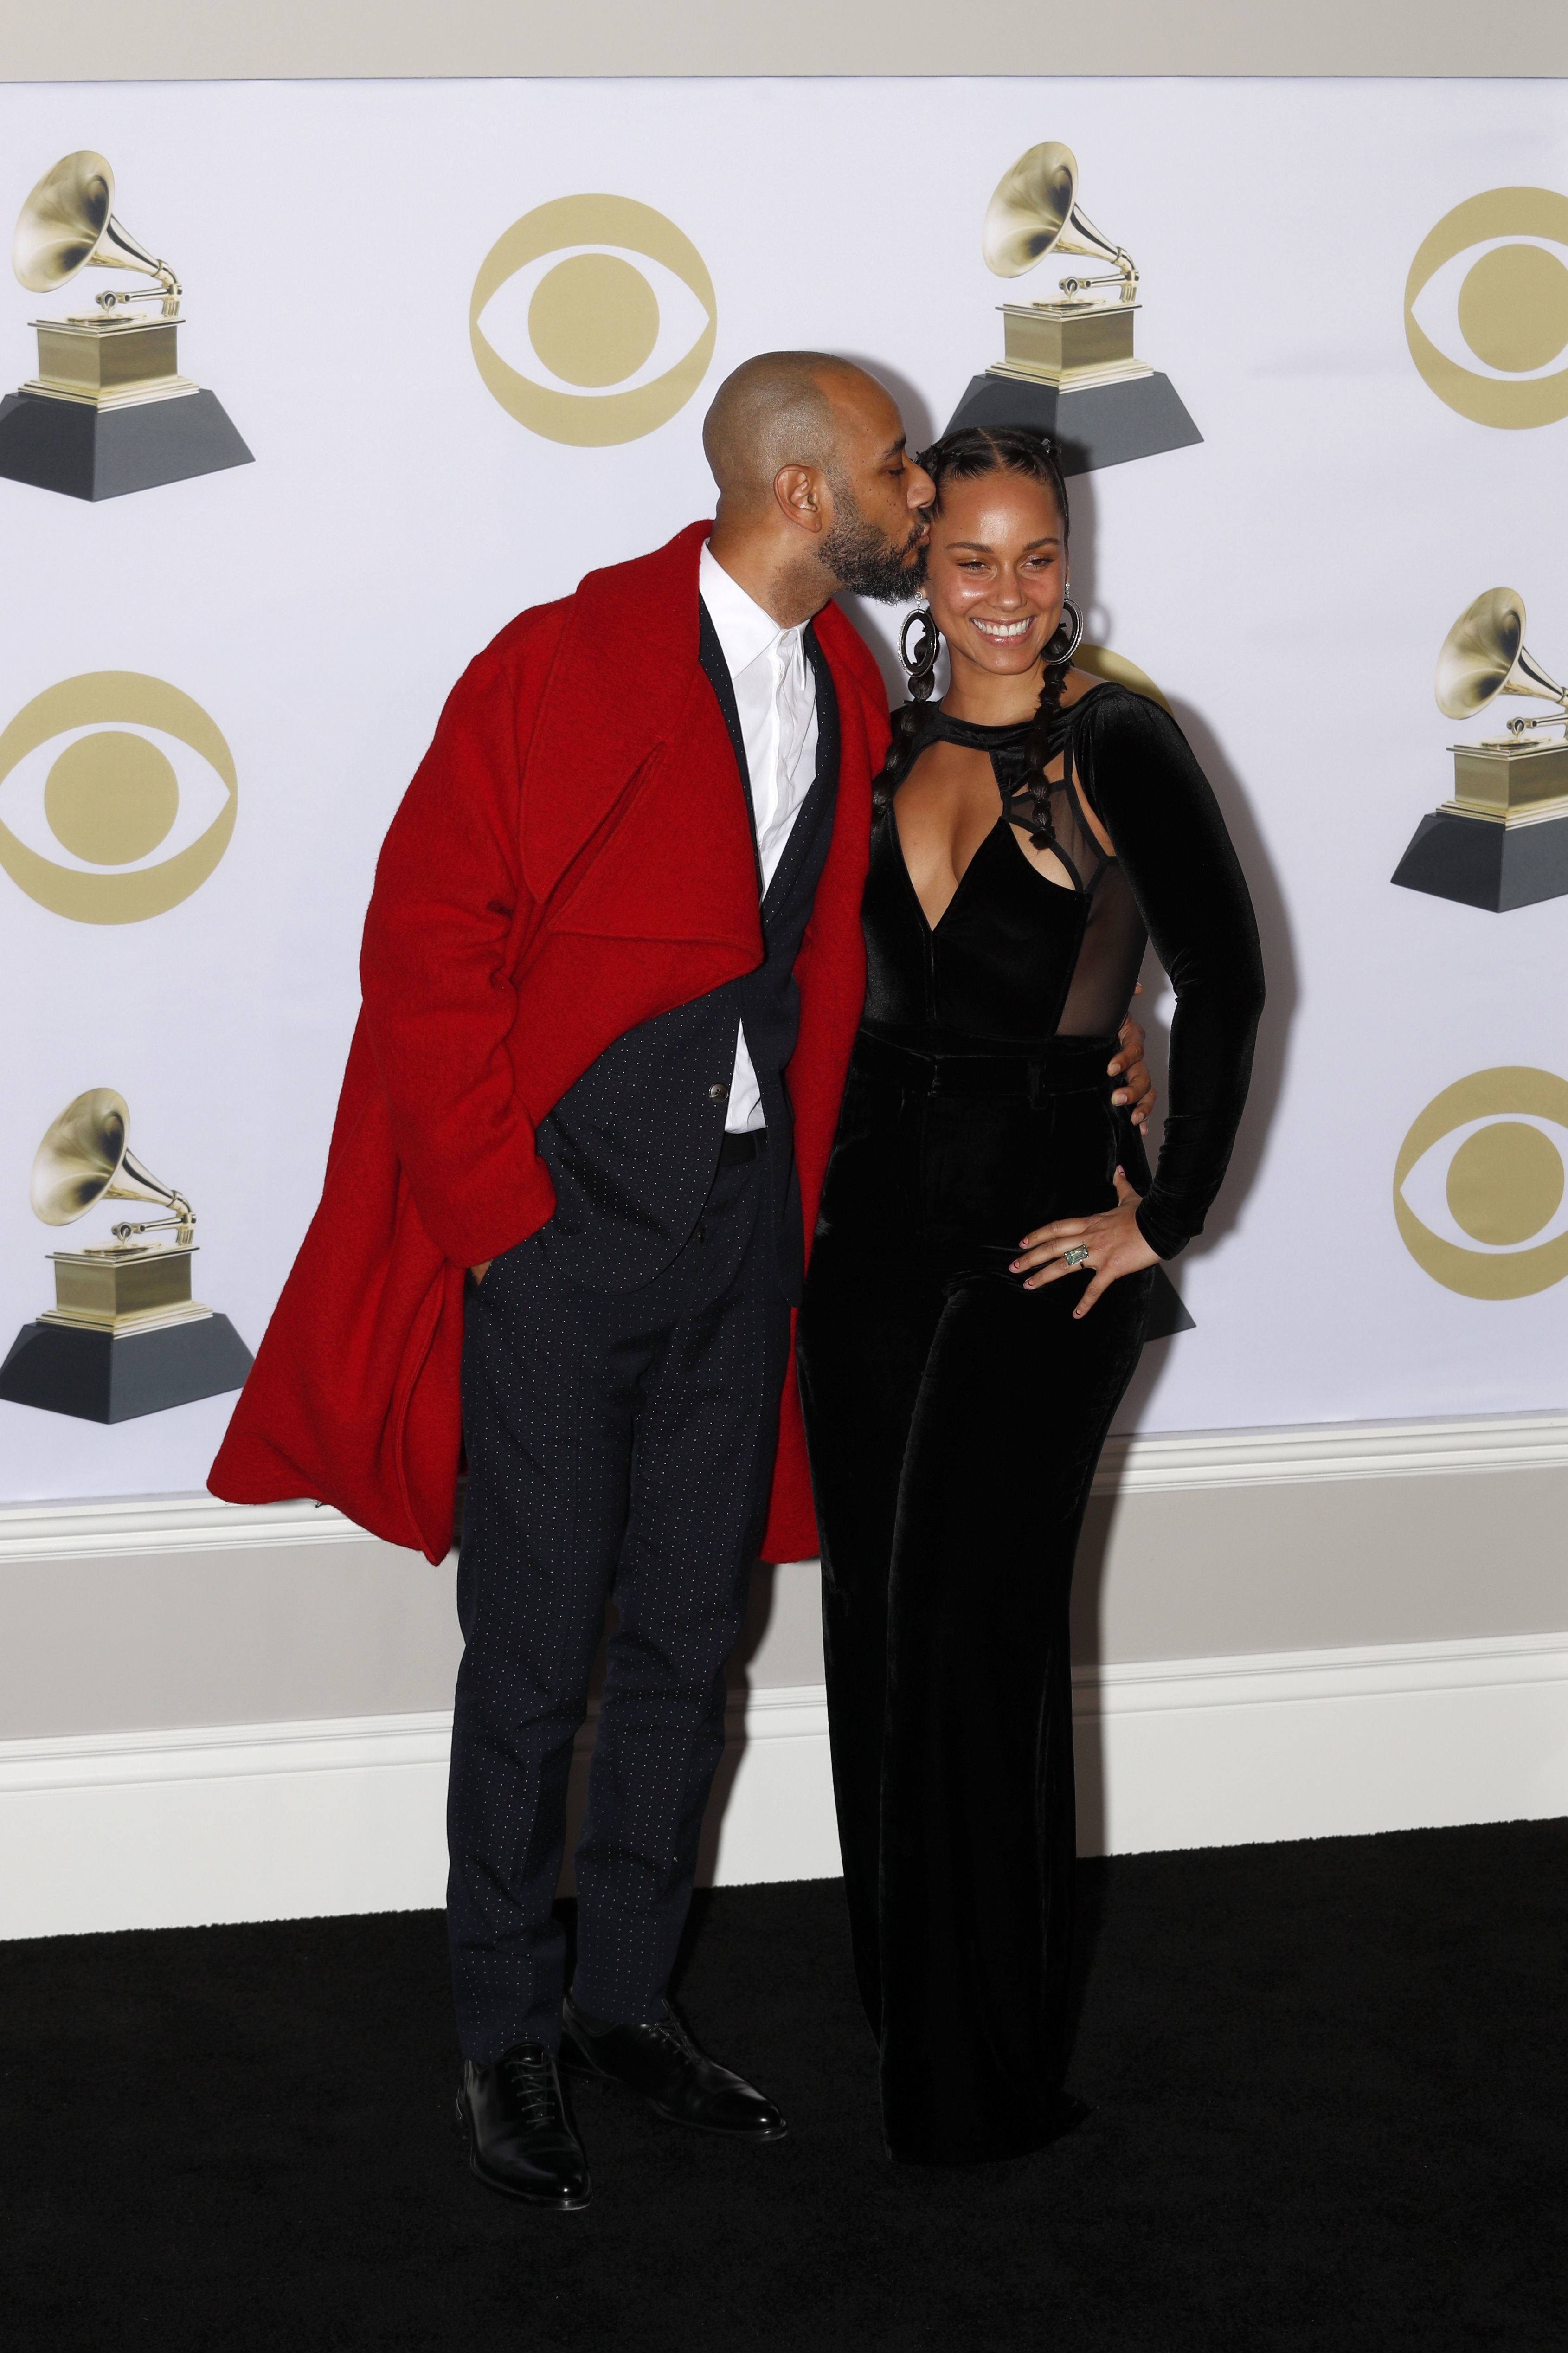 Swizz Beatz and his beautiful wife Alicia Keys shared some PDA in the press room at the 60th Annual Grammy Awards in New York City on Jan. 28, 2018.